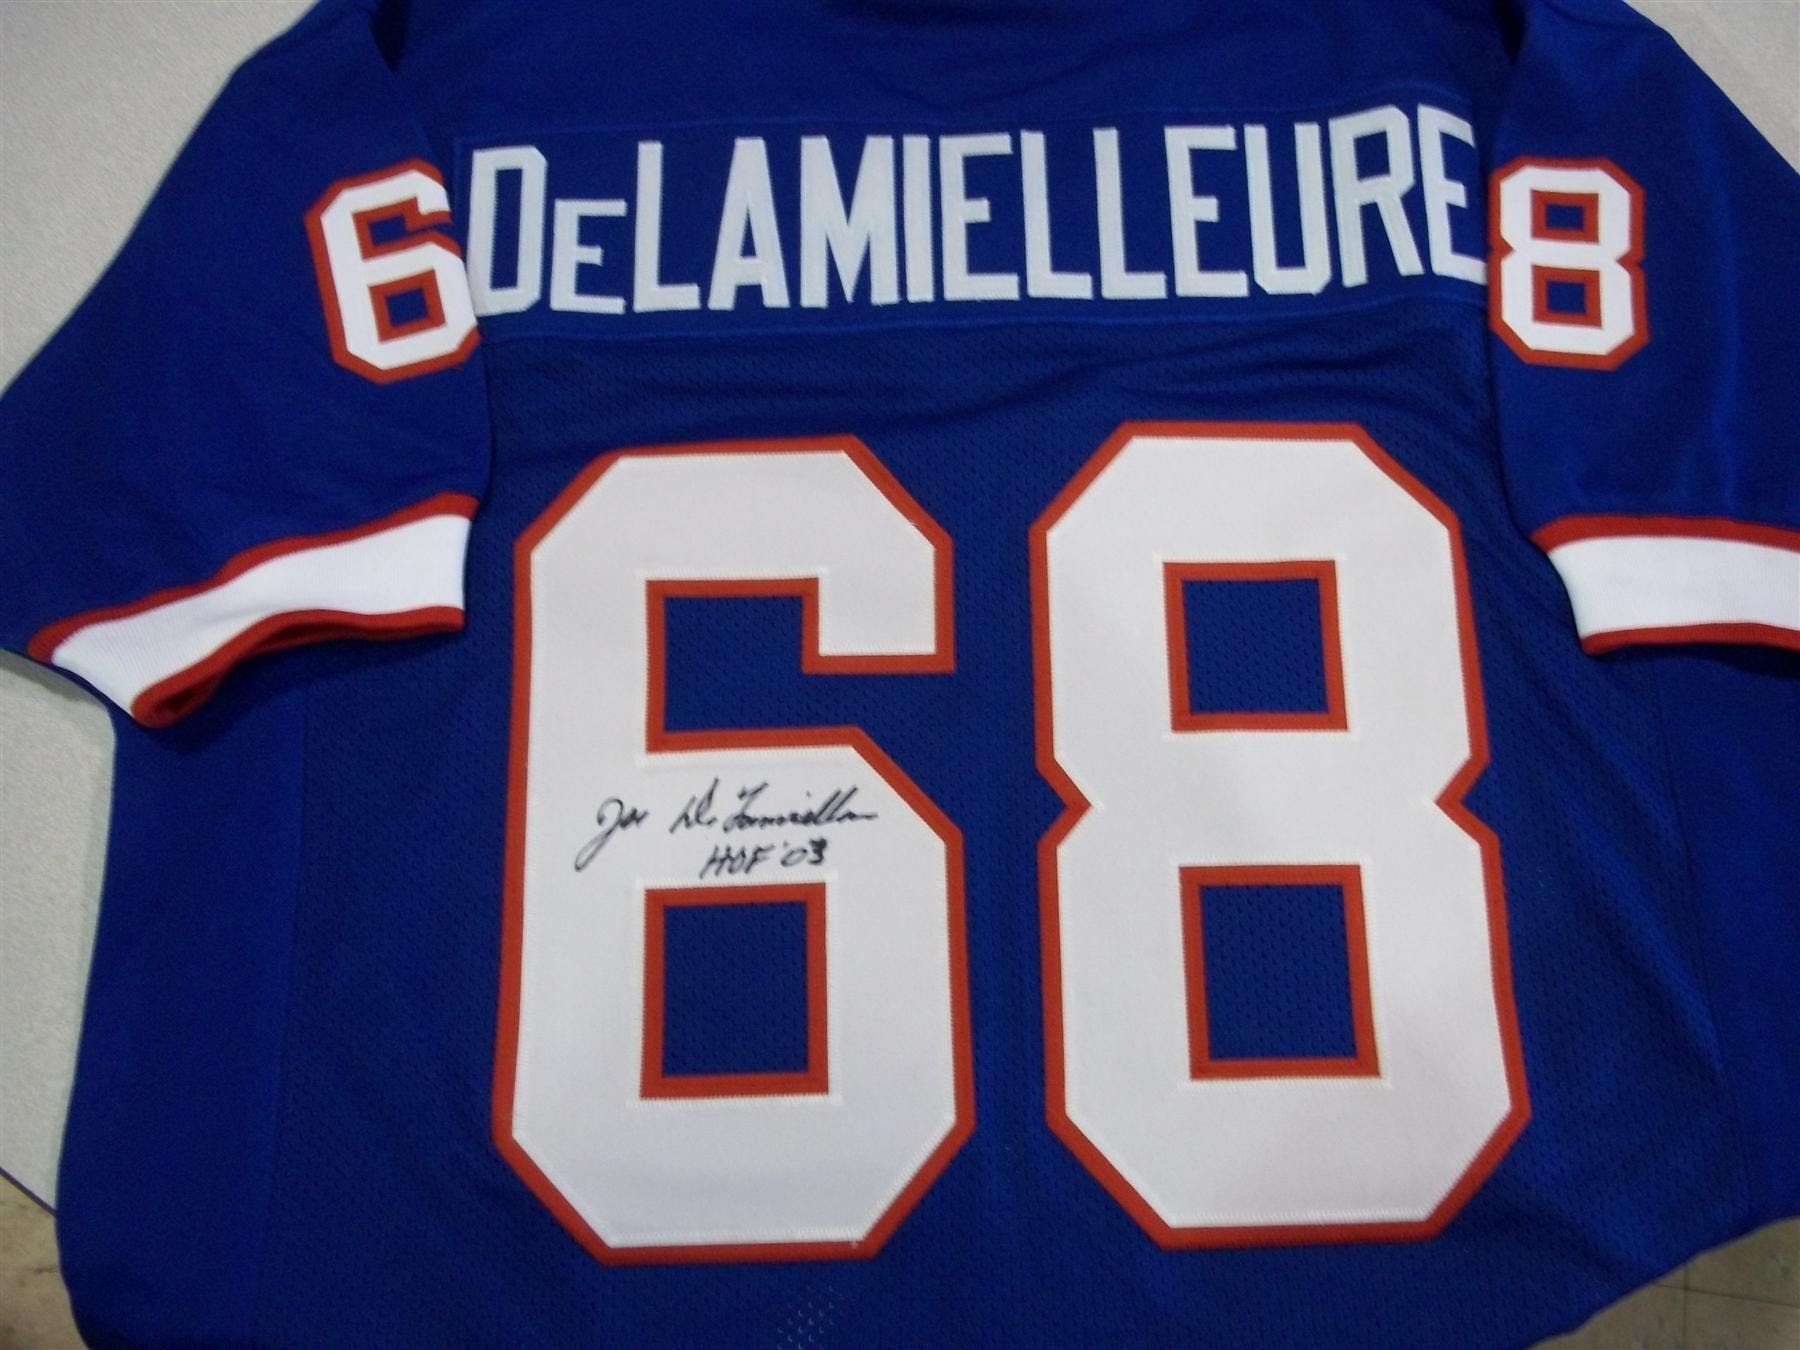 newest 0b591 a64b4 Joe DeLamielleure Autographed Buffalo Bills Blue Football Jersey DACW